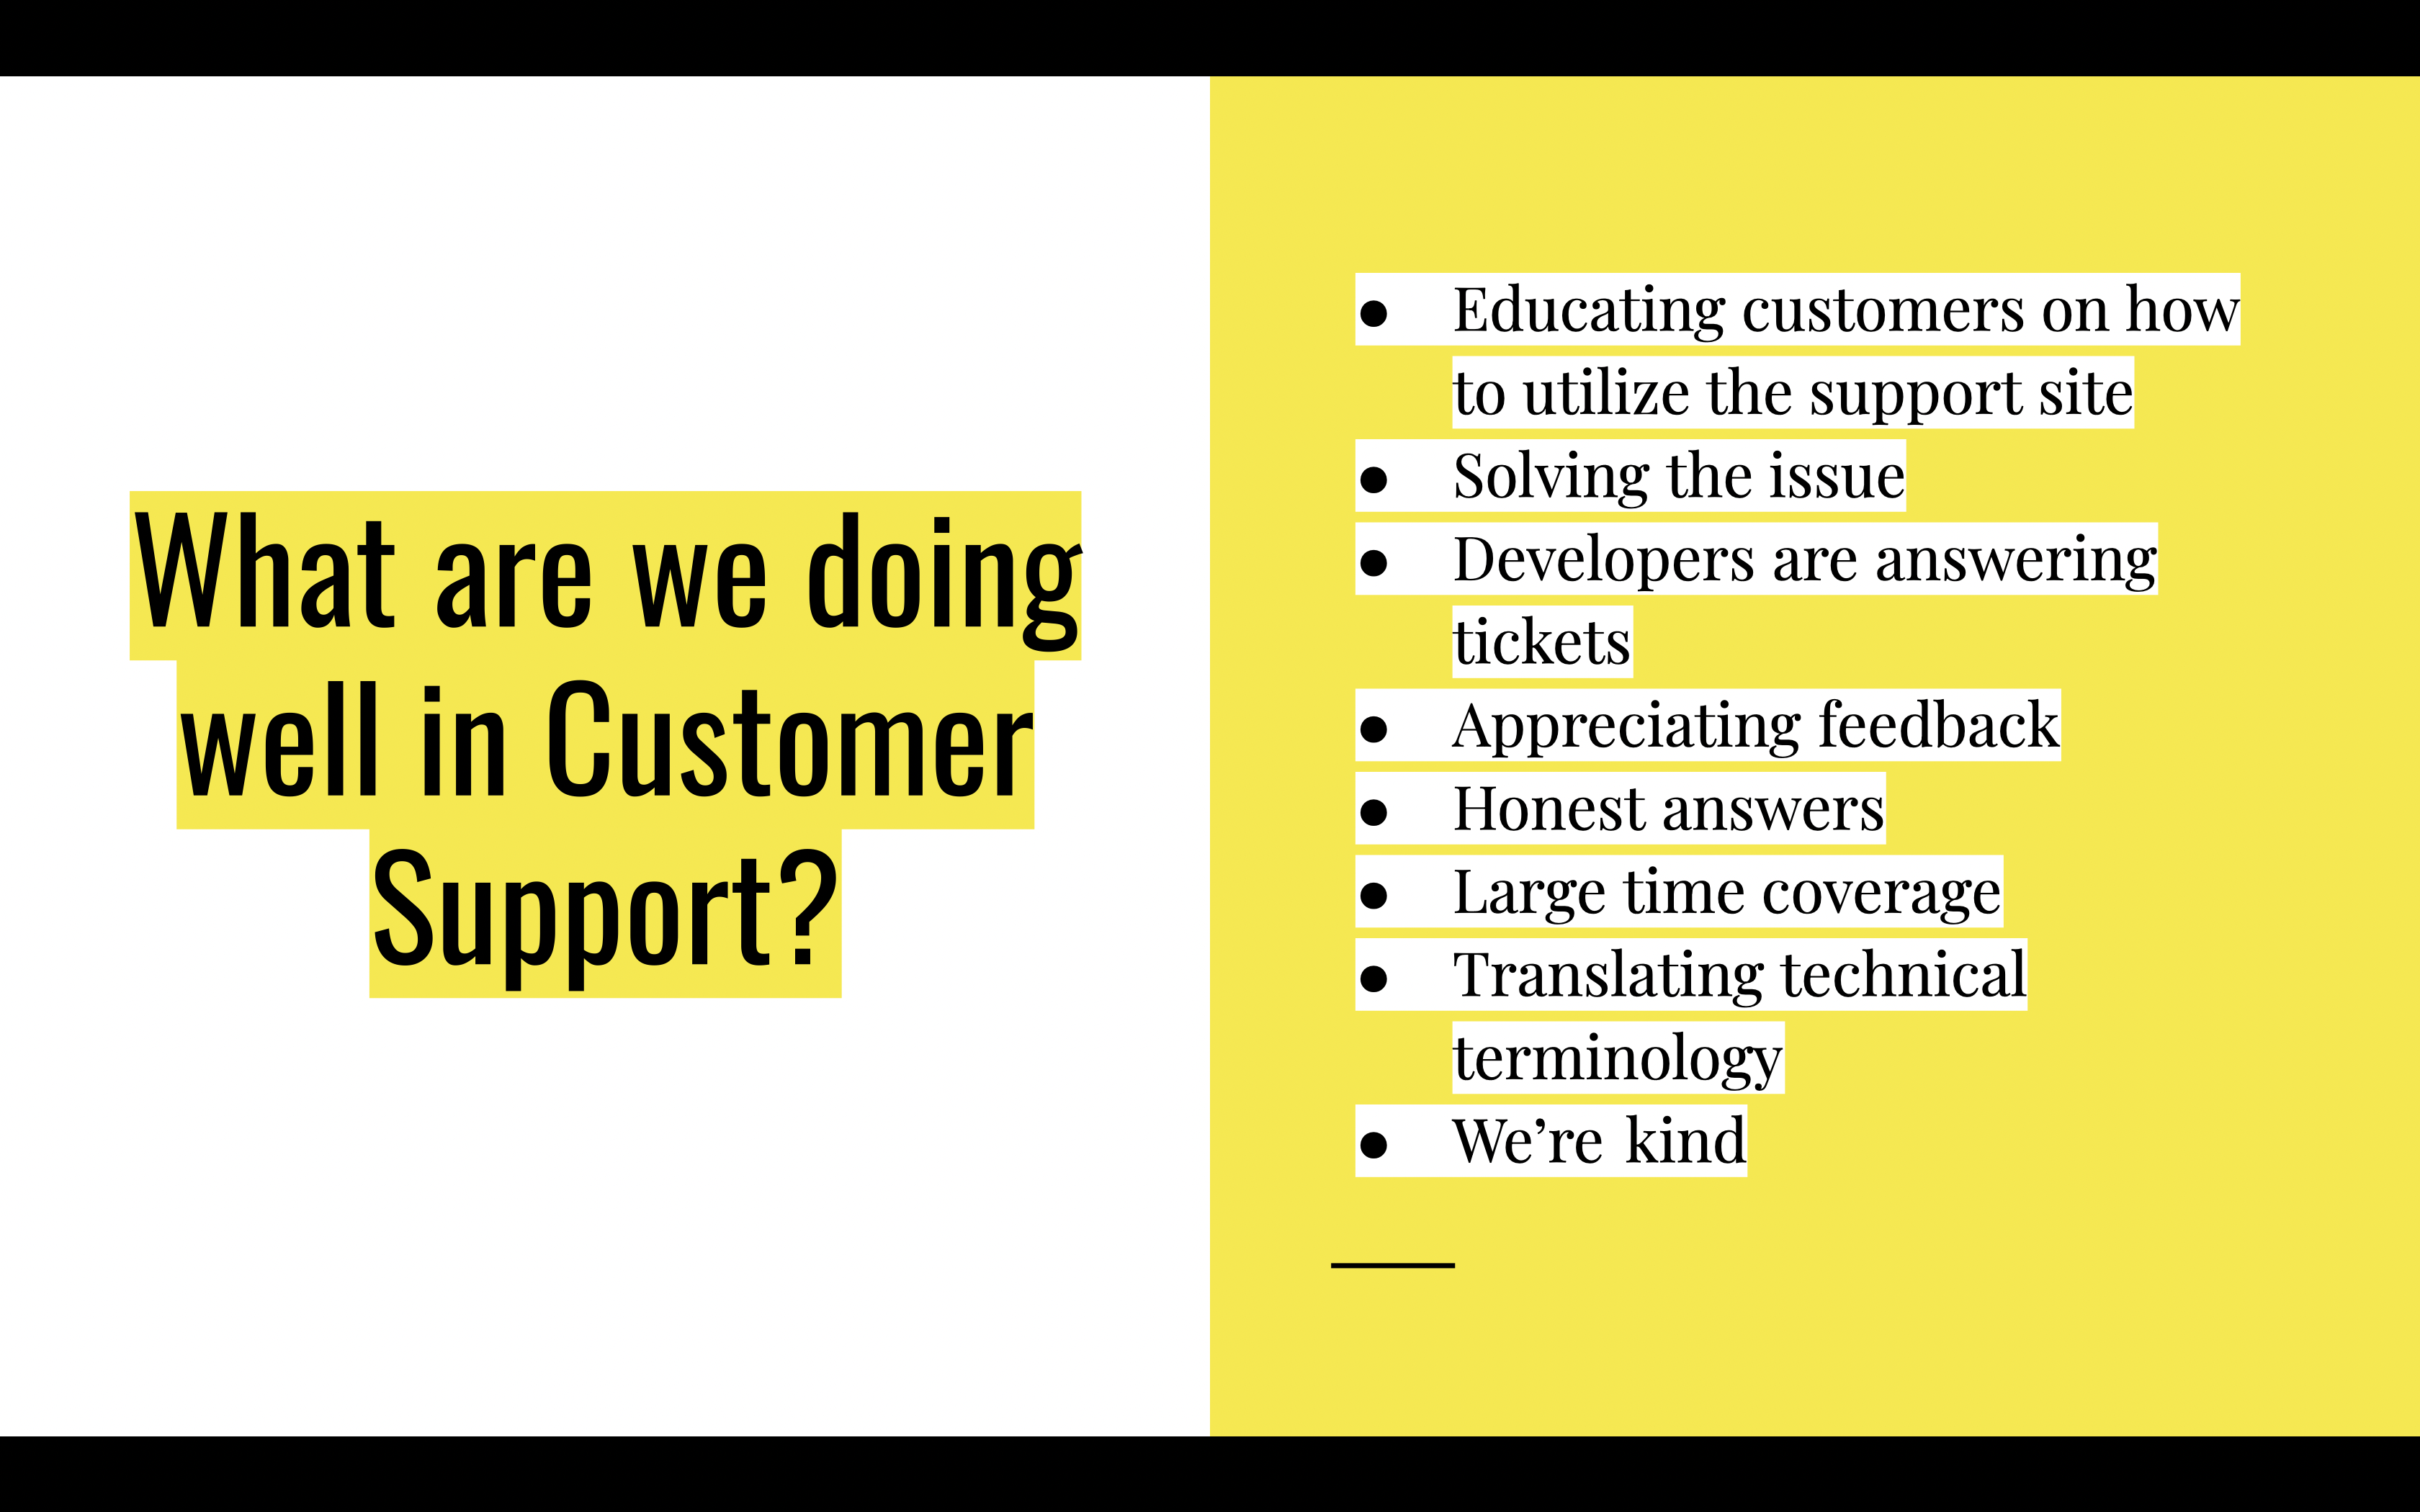 Excerpt from presentation on what's going well in support